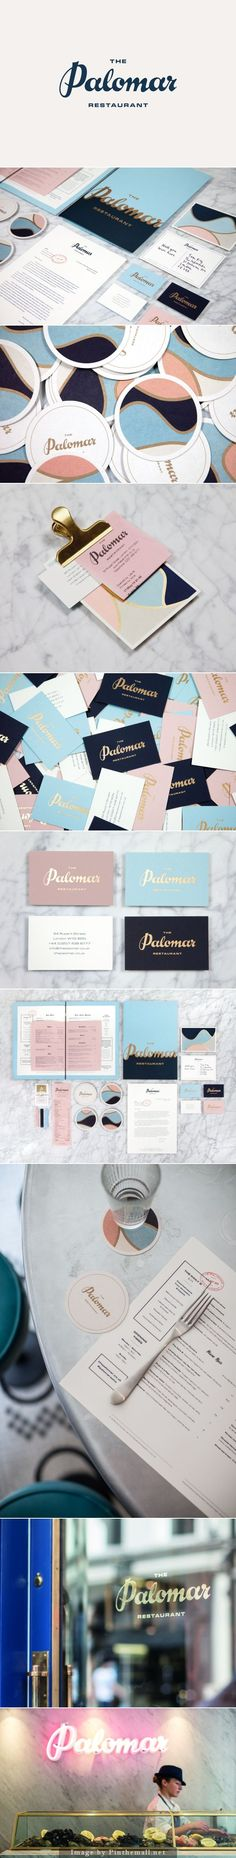 Corporate Design für Restaurant The Palomar / Goldprägung Beautiful colours and use of pattern.